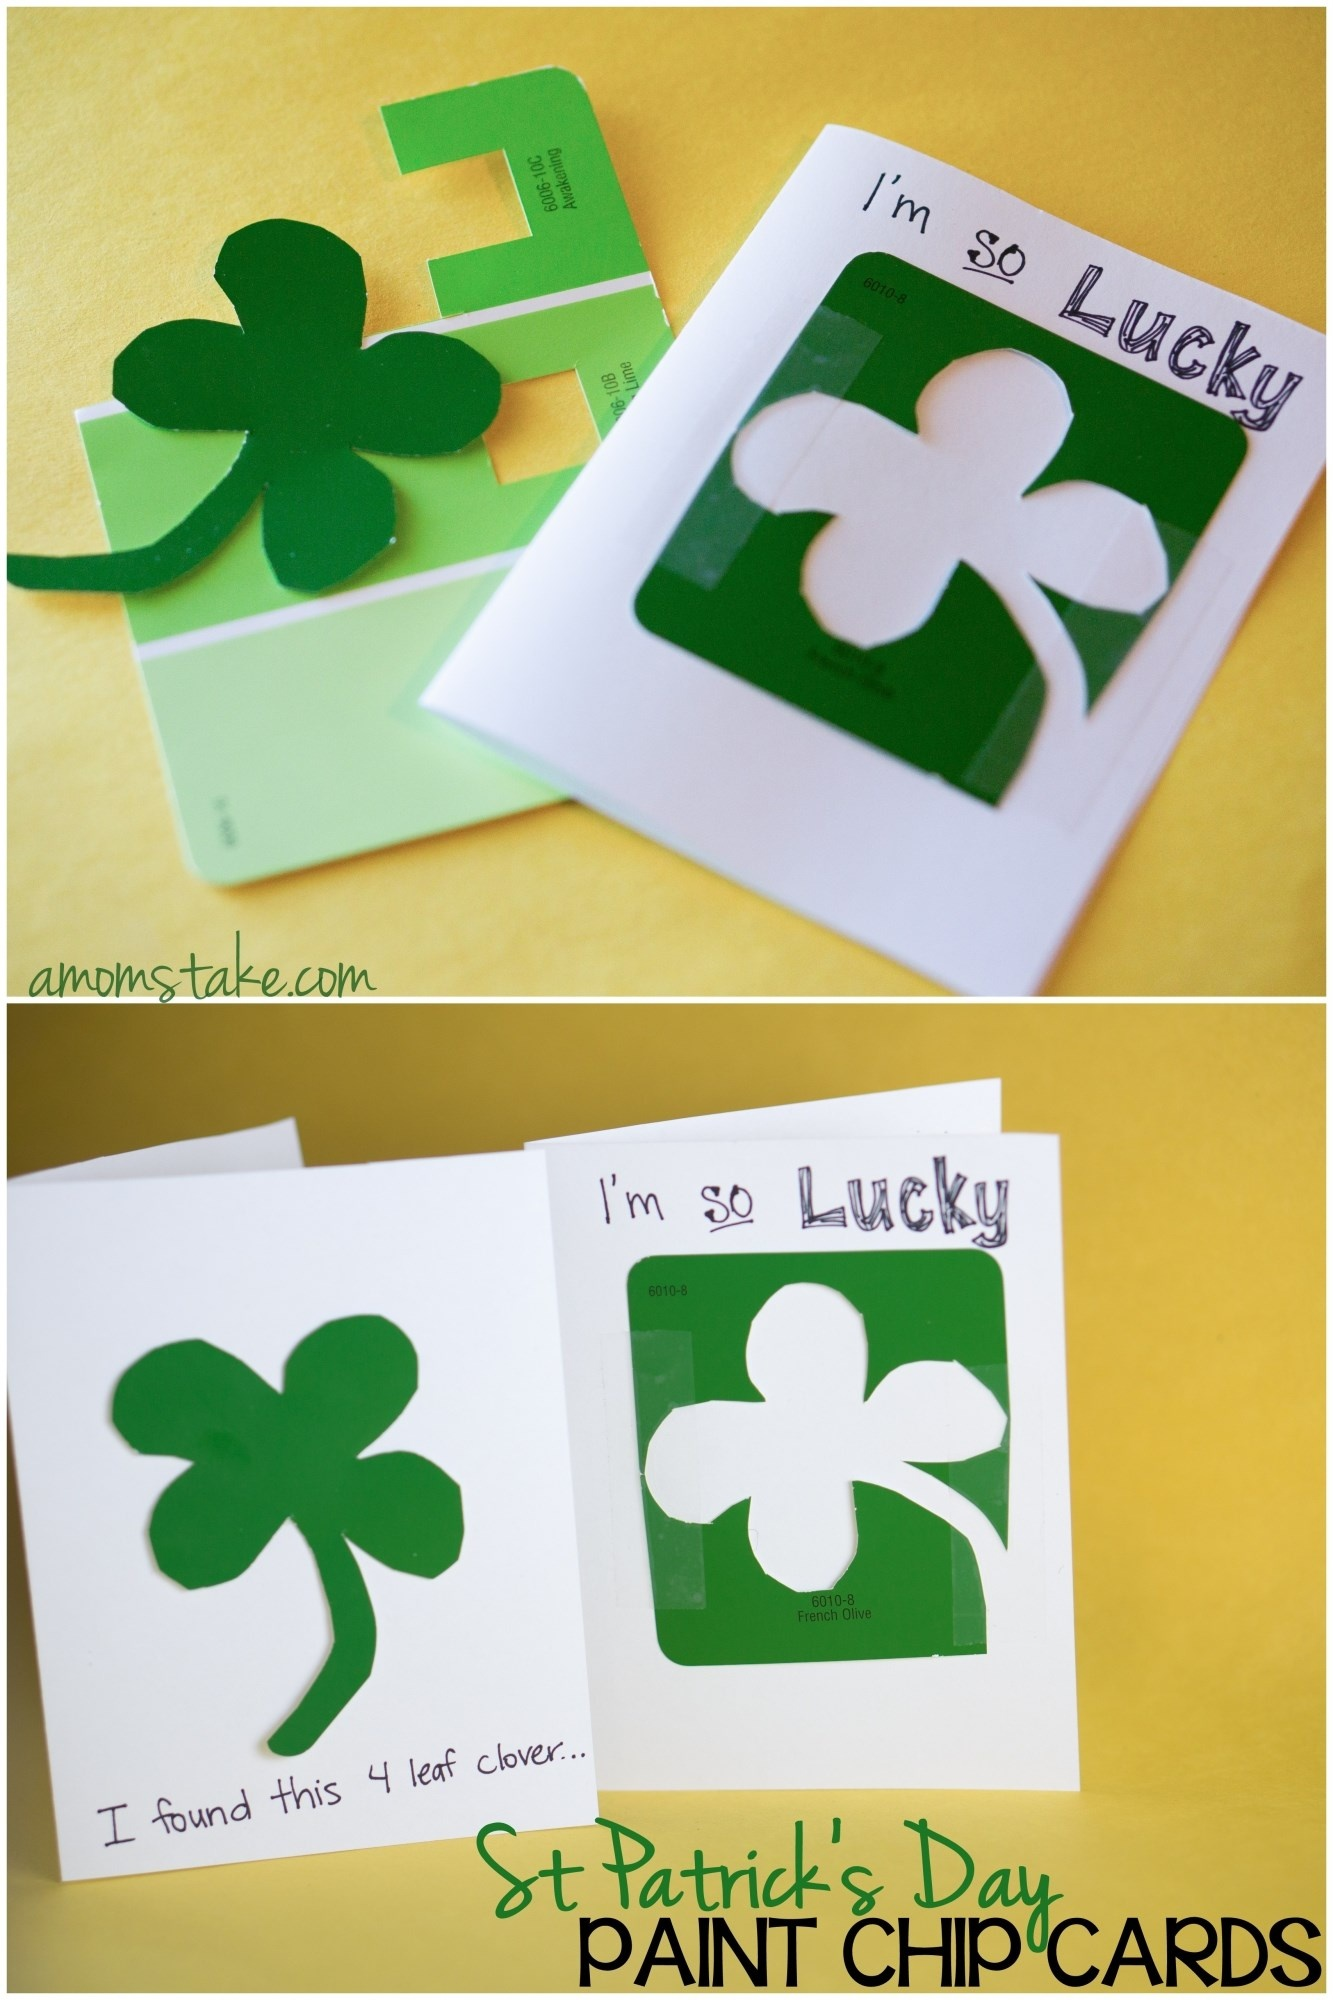 St. Patrick's Day Paint Chip Cards